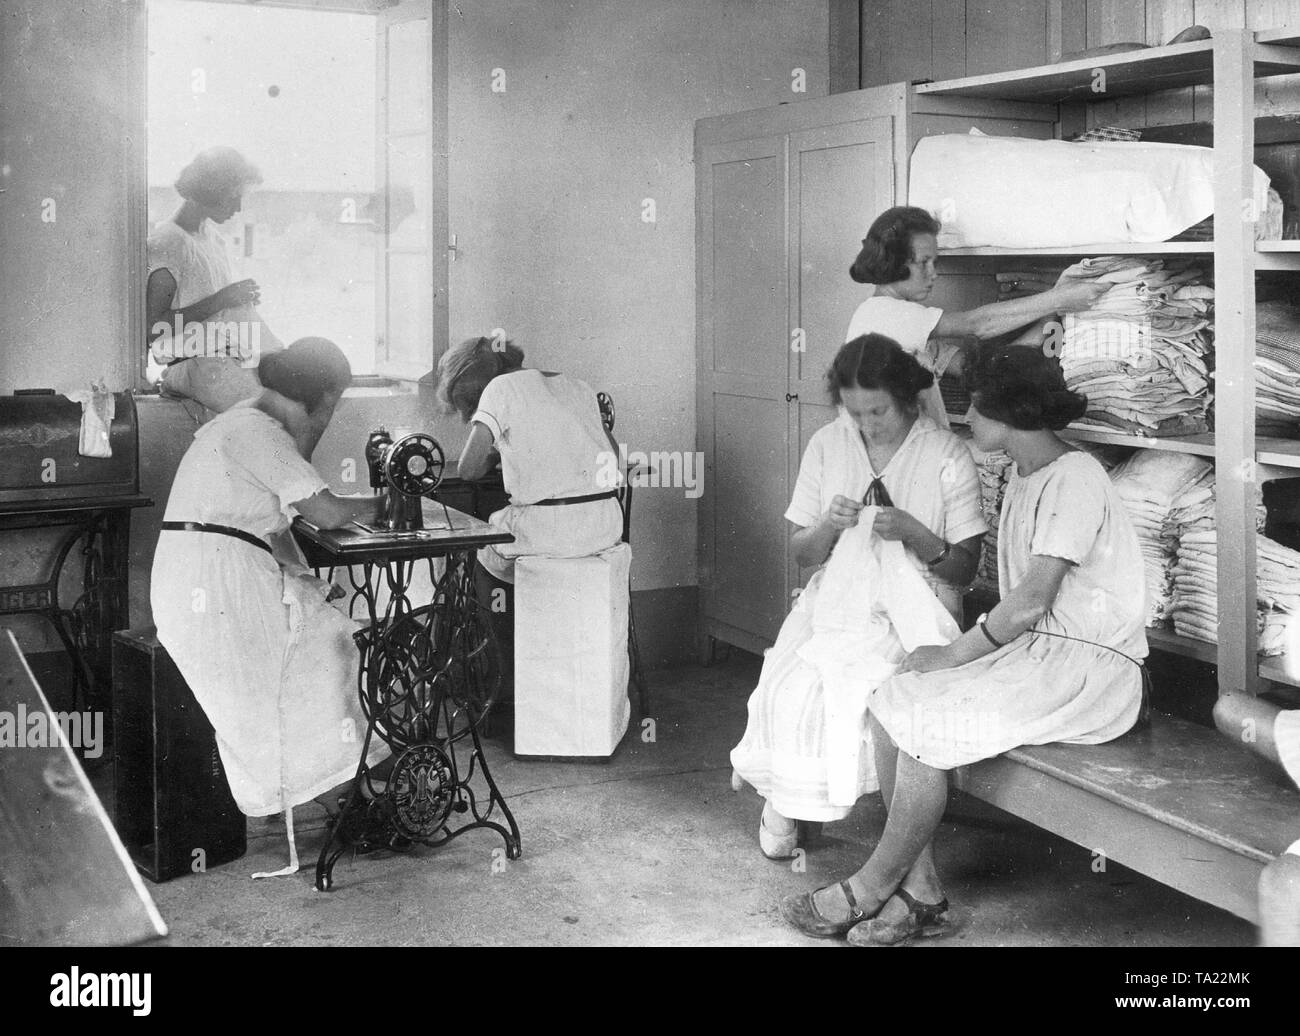 Six women work in a tailor's workshop making children's clothing in a Jewish colony. - Stock Image